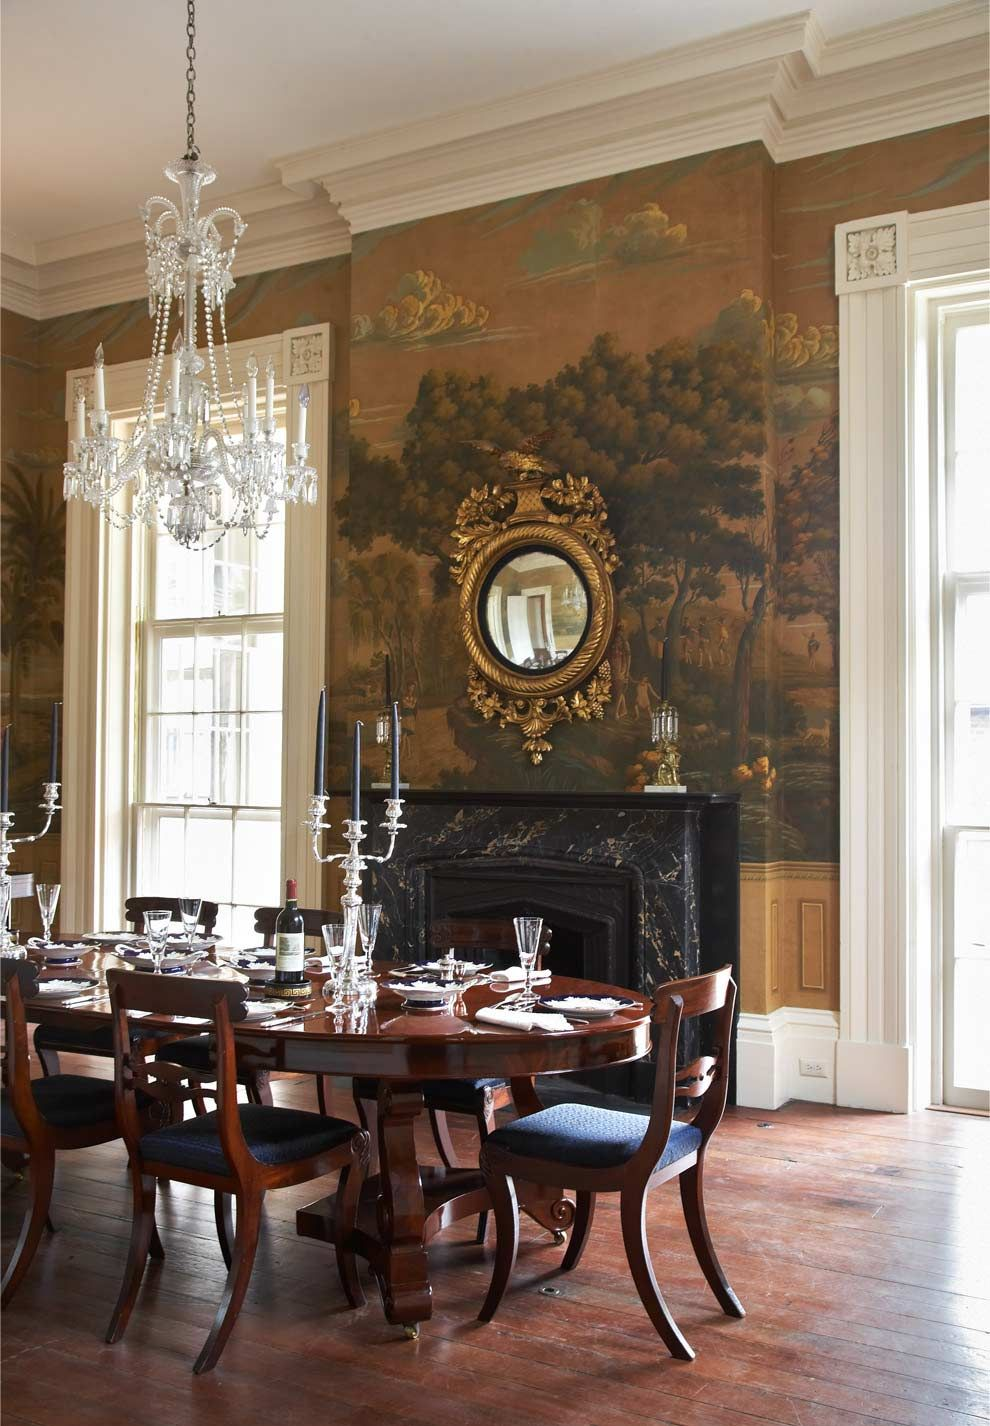 Pin By Pedro Perry On Home Sweet Home Dining Room Wallpaper Elegant Dining Room Decor